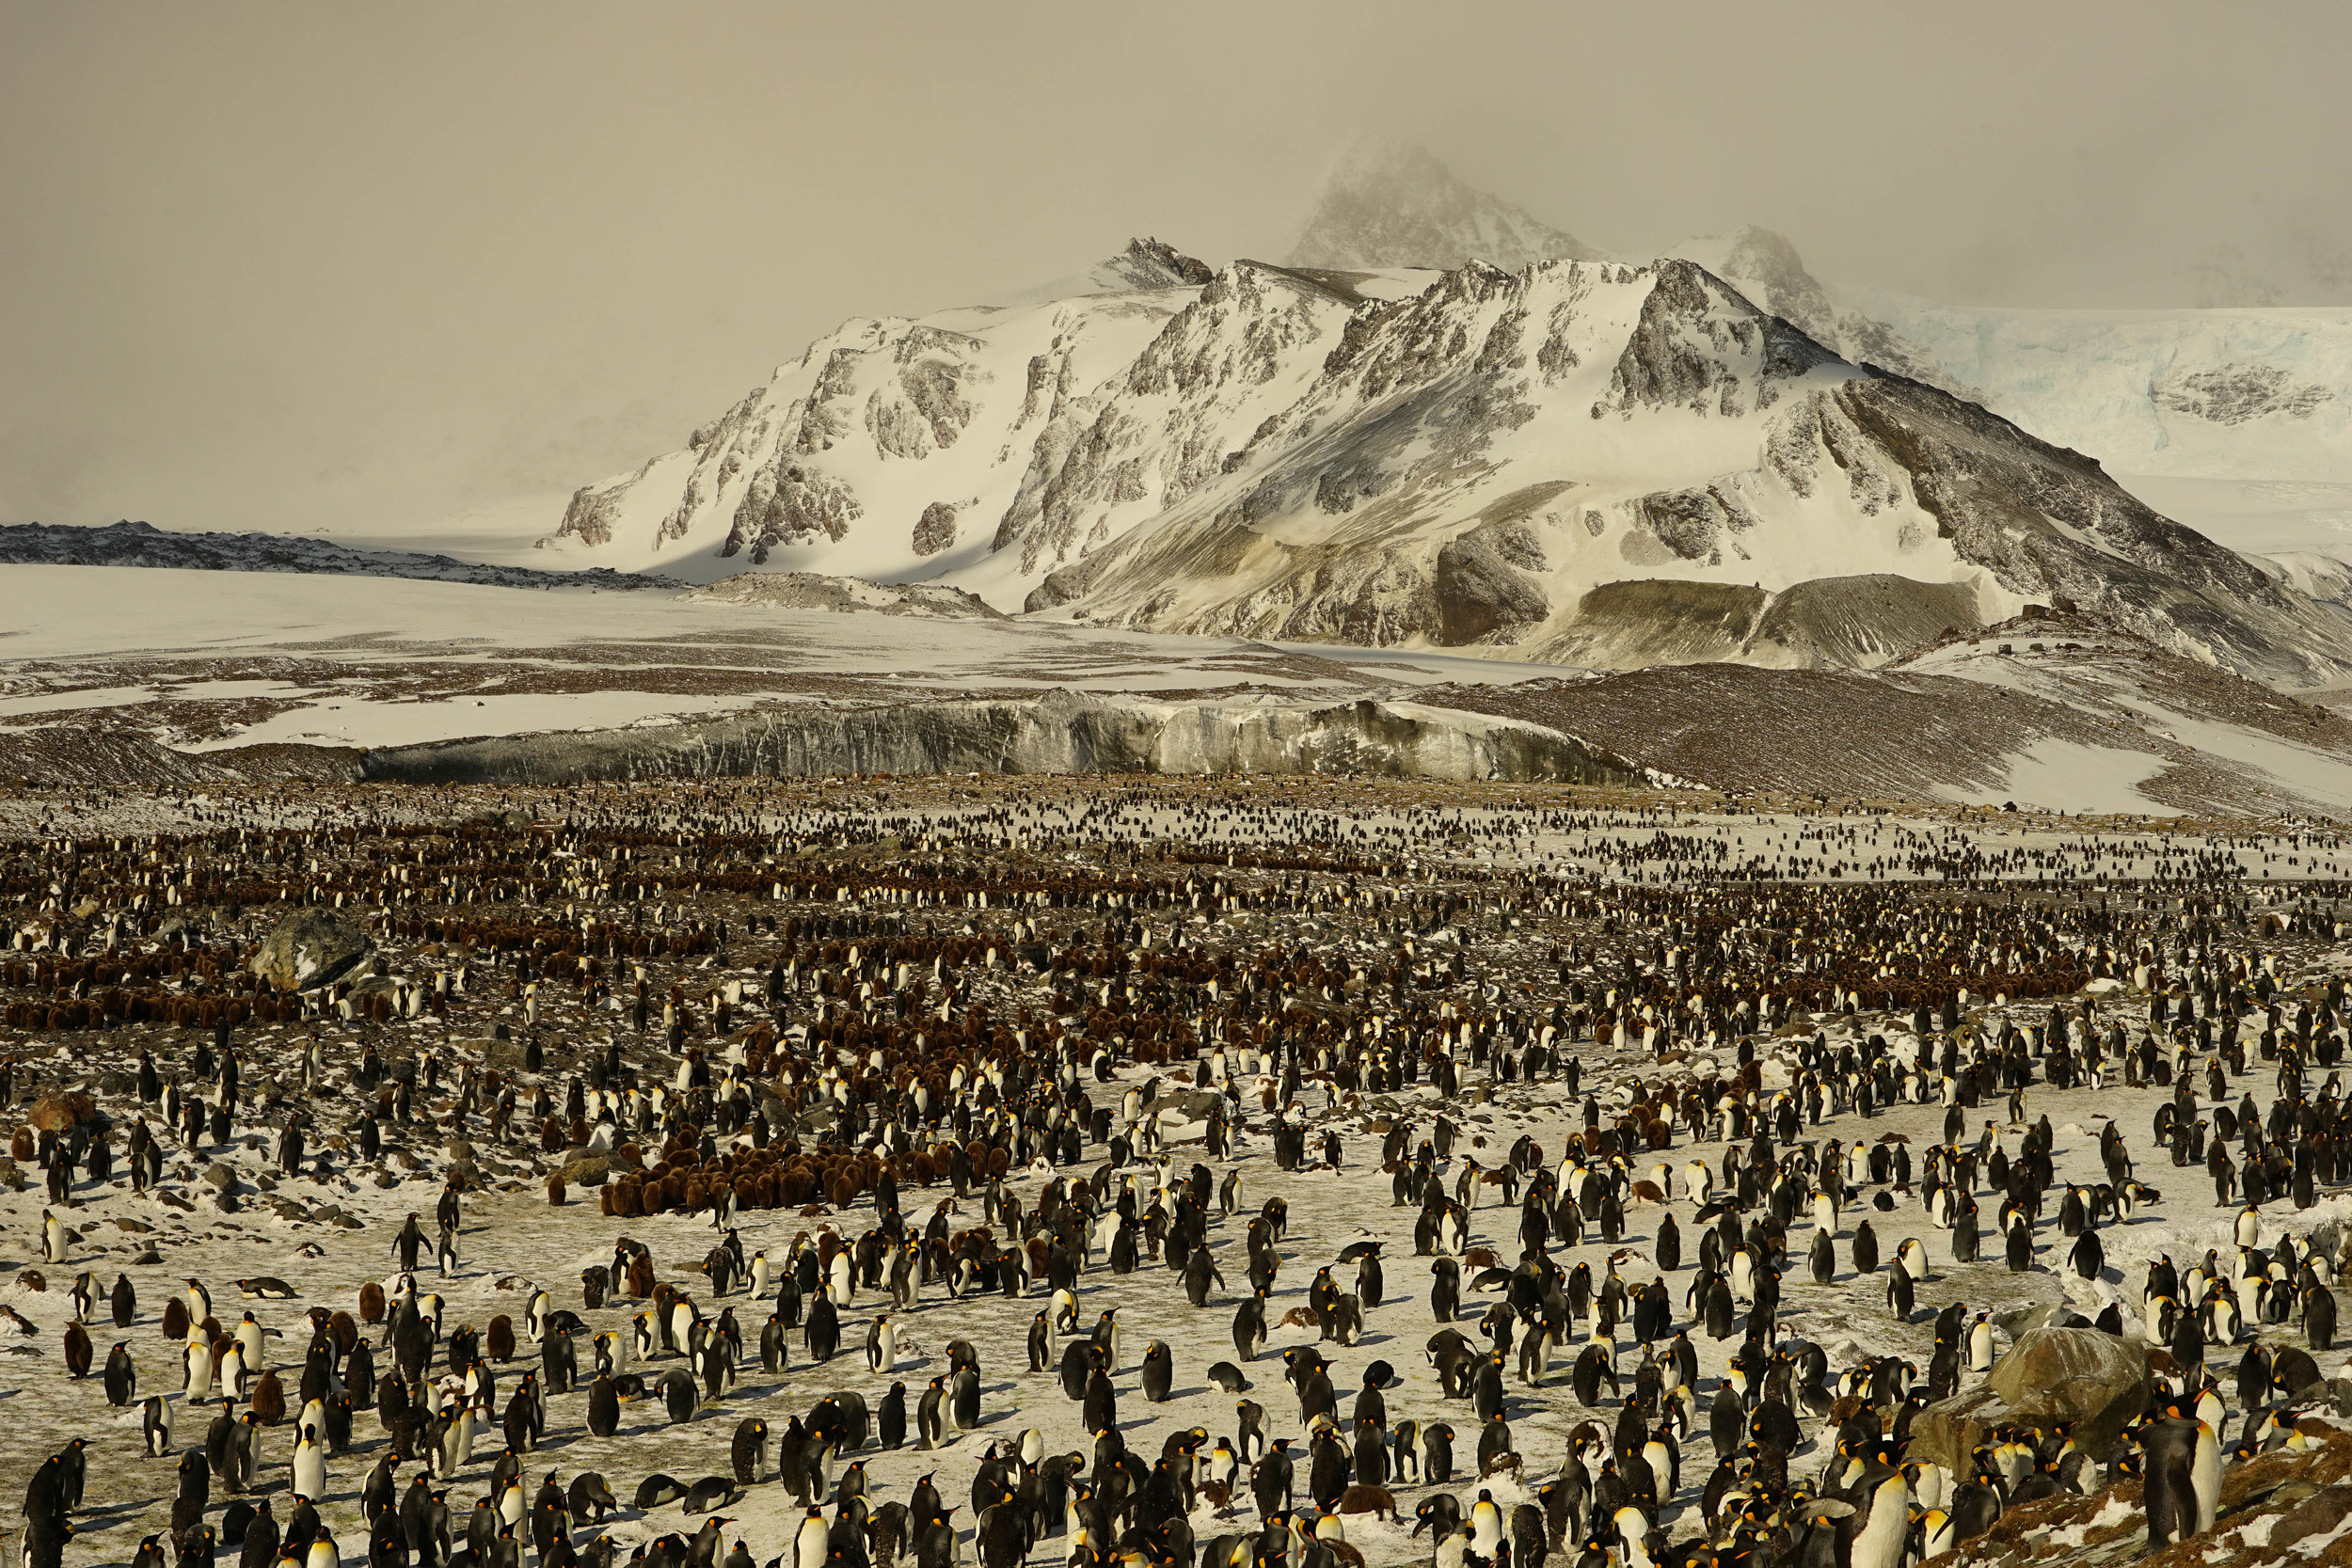 St. Andrew's Bay is home to as many as 200,000 breeding pairs of King Penguins.